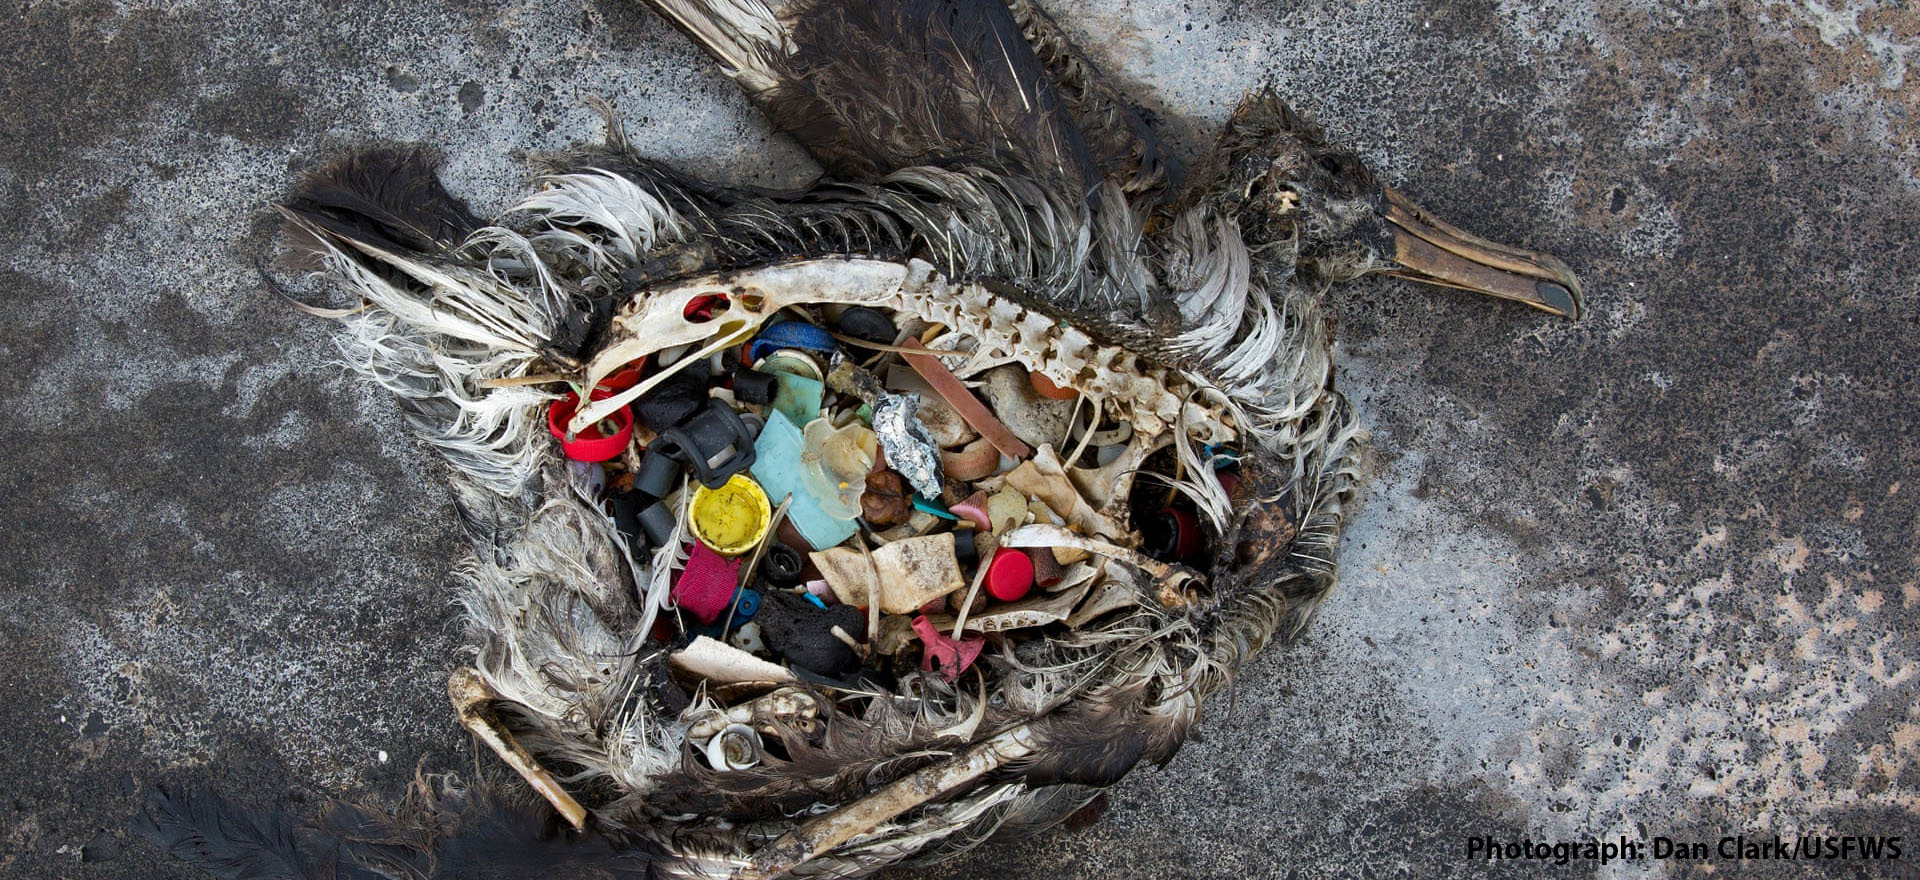 CRITICAL MASS INAUGURAL LECTURE: PLASTIC'S TIPPING POINT FT. ROLAND GEYER